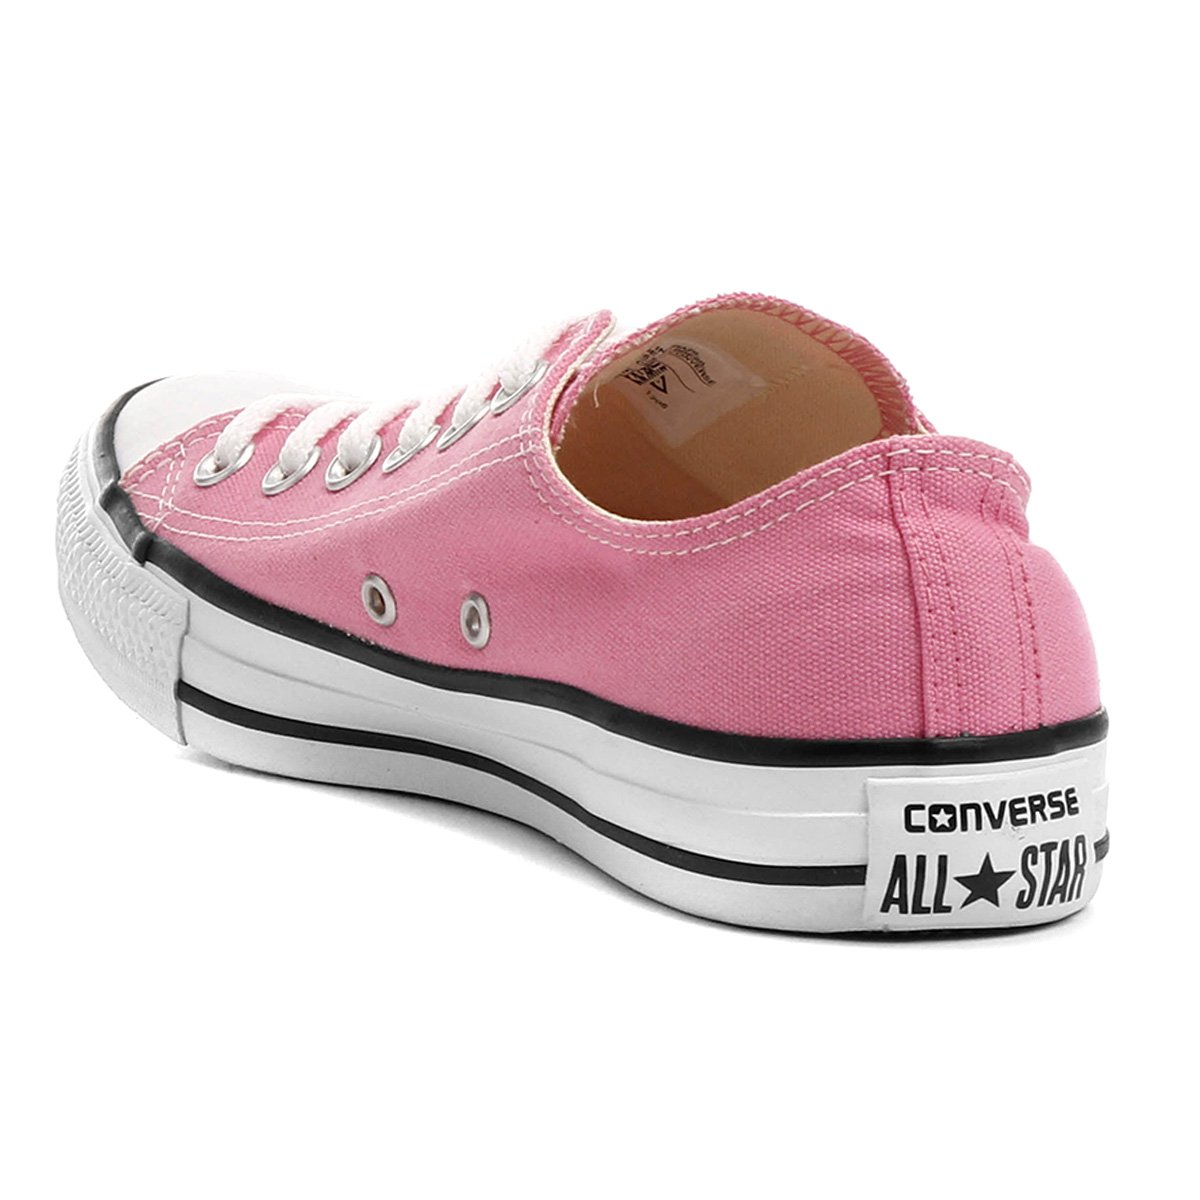 Ox As Converse All Core Star Ct Rosa Tênis e Branco YSwqp